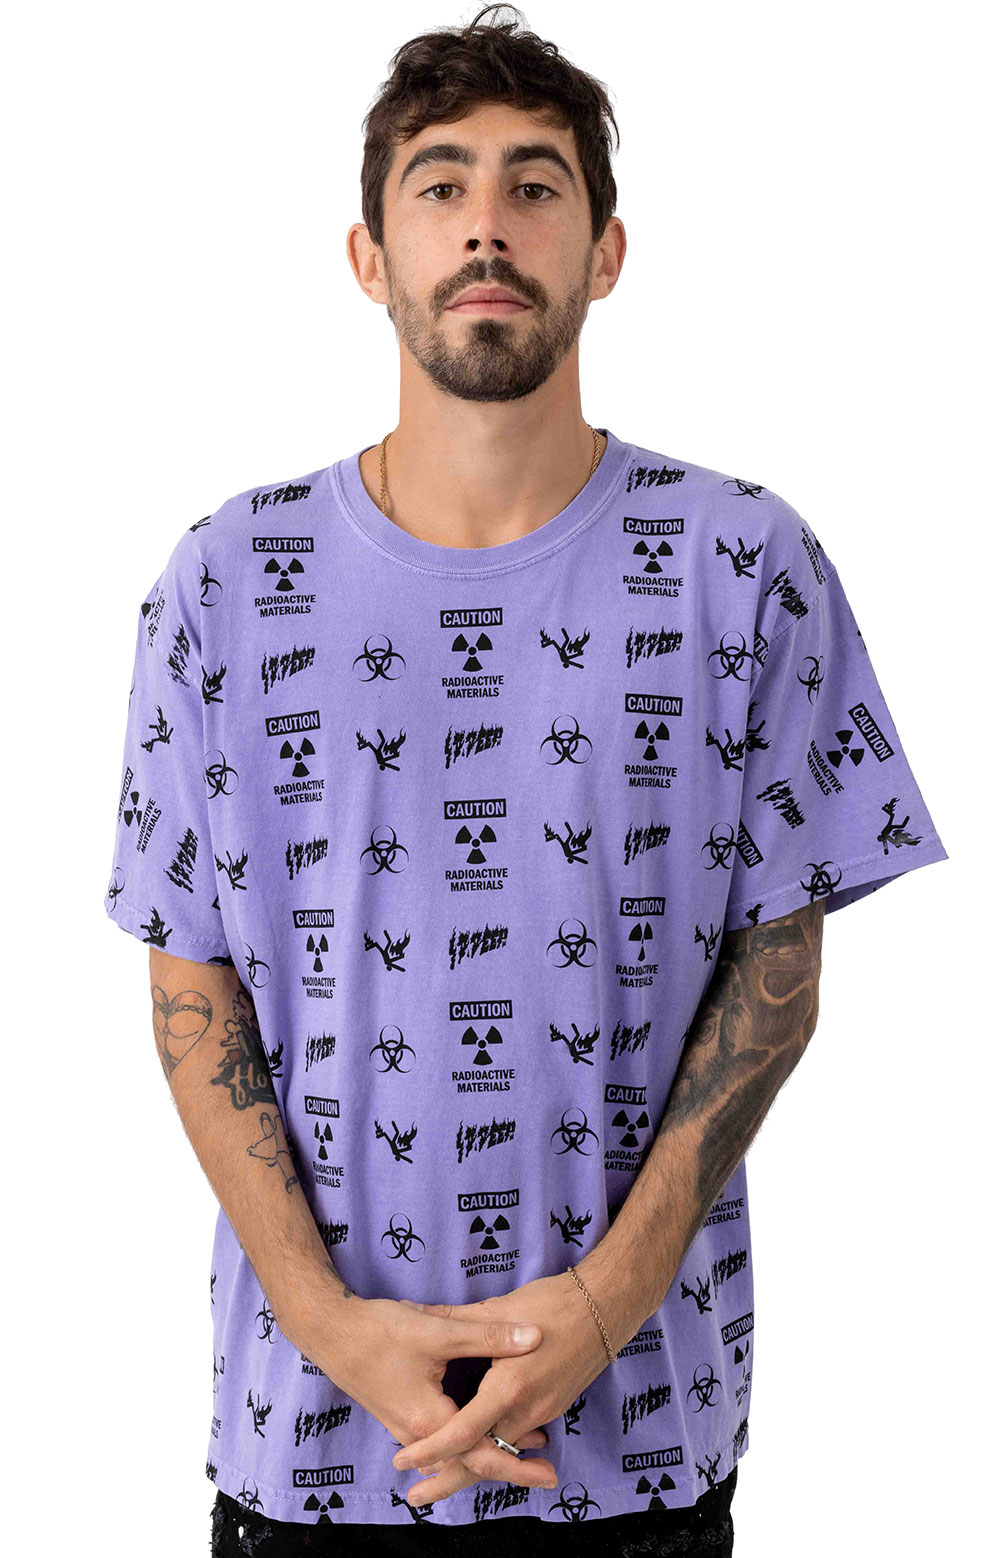 Noxious Fumes T-Shirt - Purple